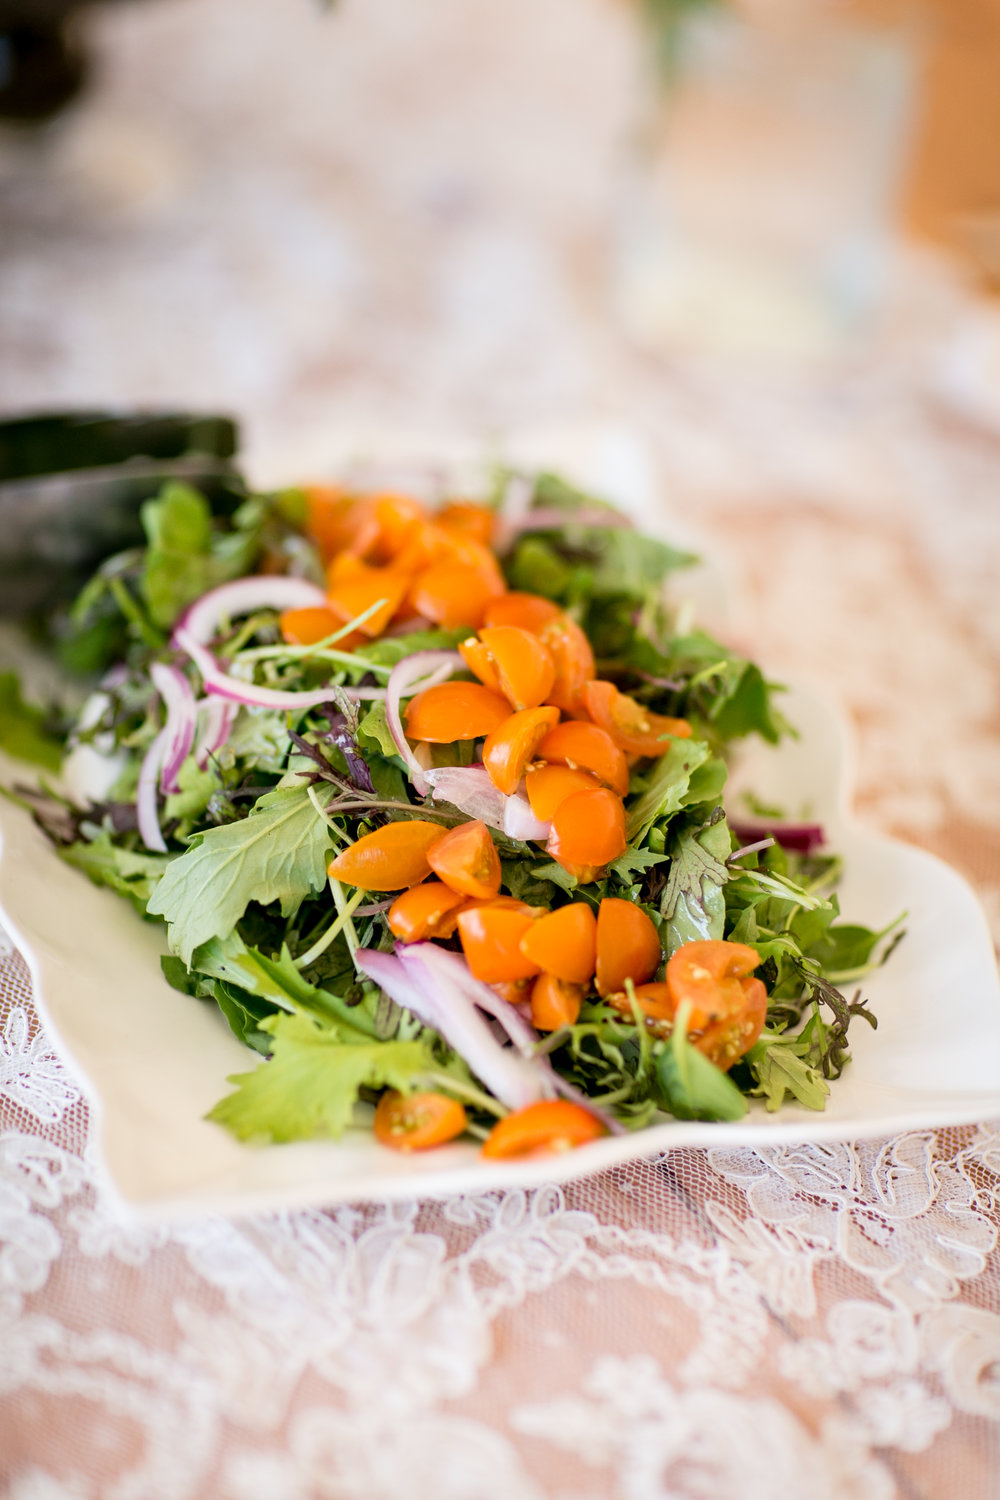 A Thyme to Cook and fresh veggies from their farm and The Farm School in Anthol, MA. Beautiful salad!